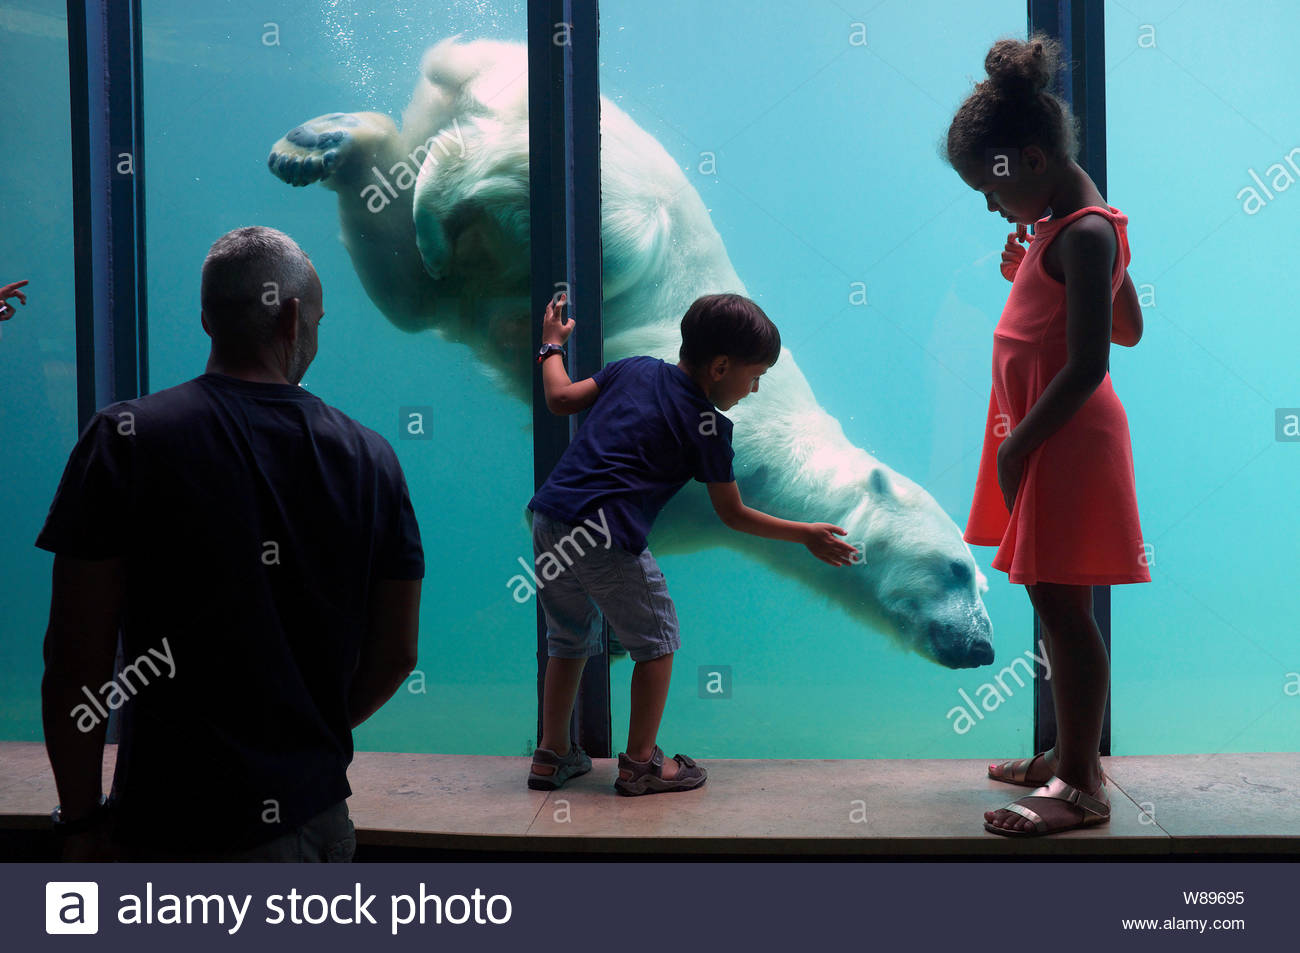 Children marvel at the polar bear swimming underwater in its enclosure. Budapest Zoo, Hungary. Stock Photo